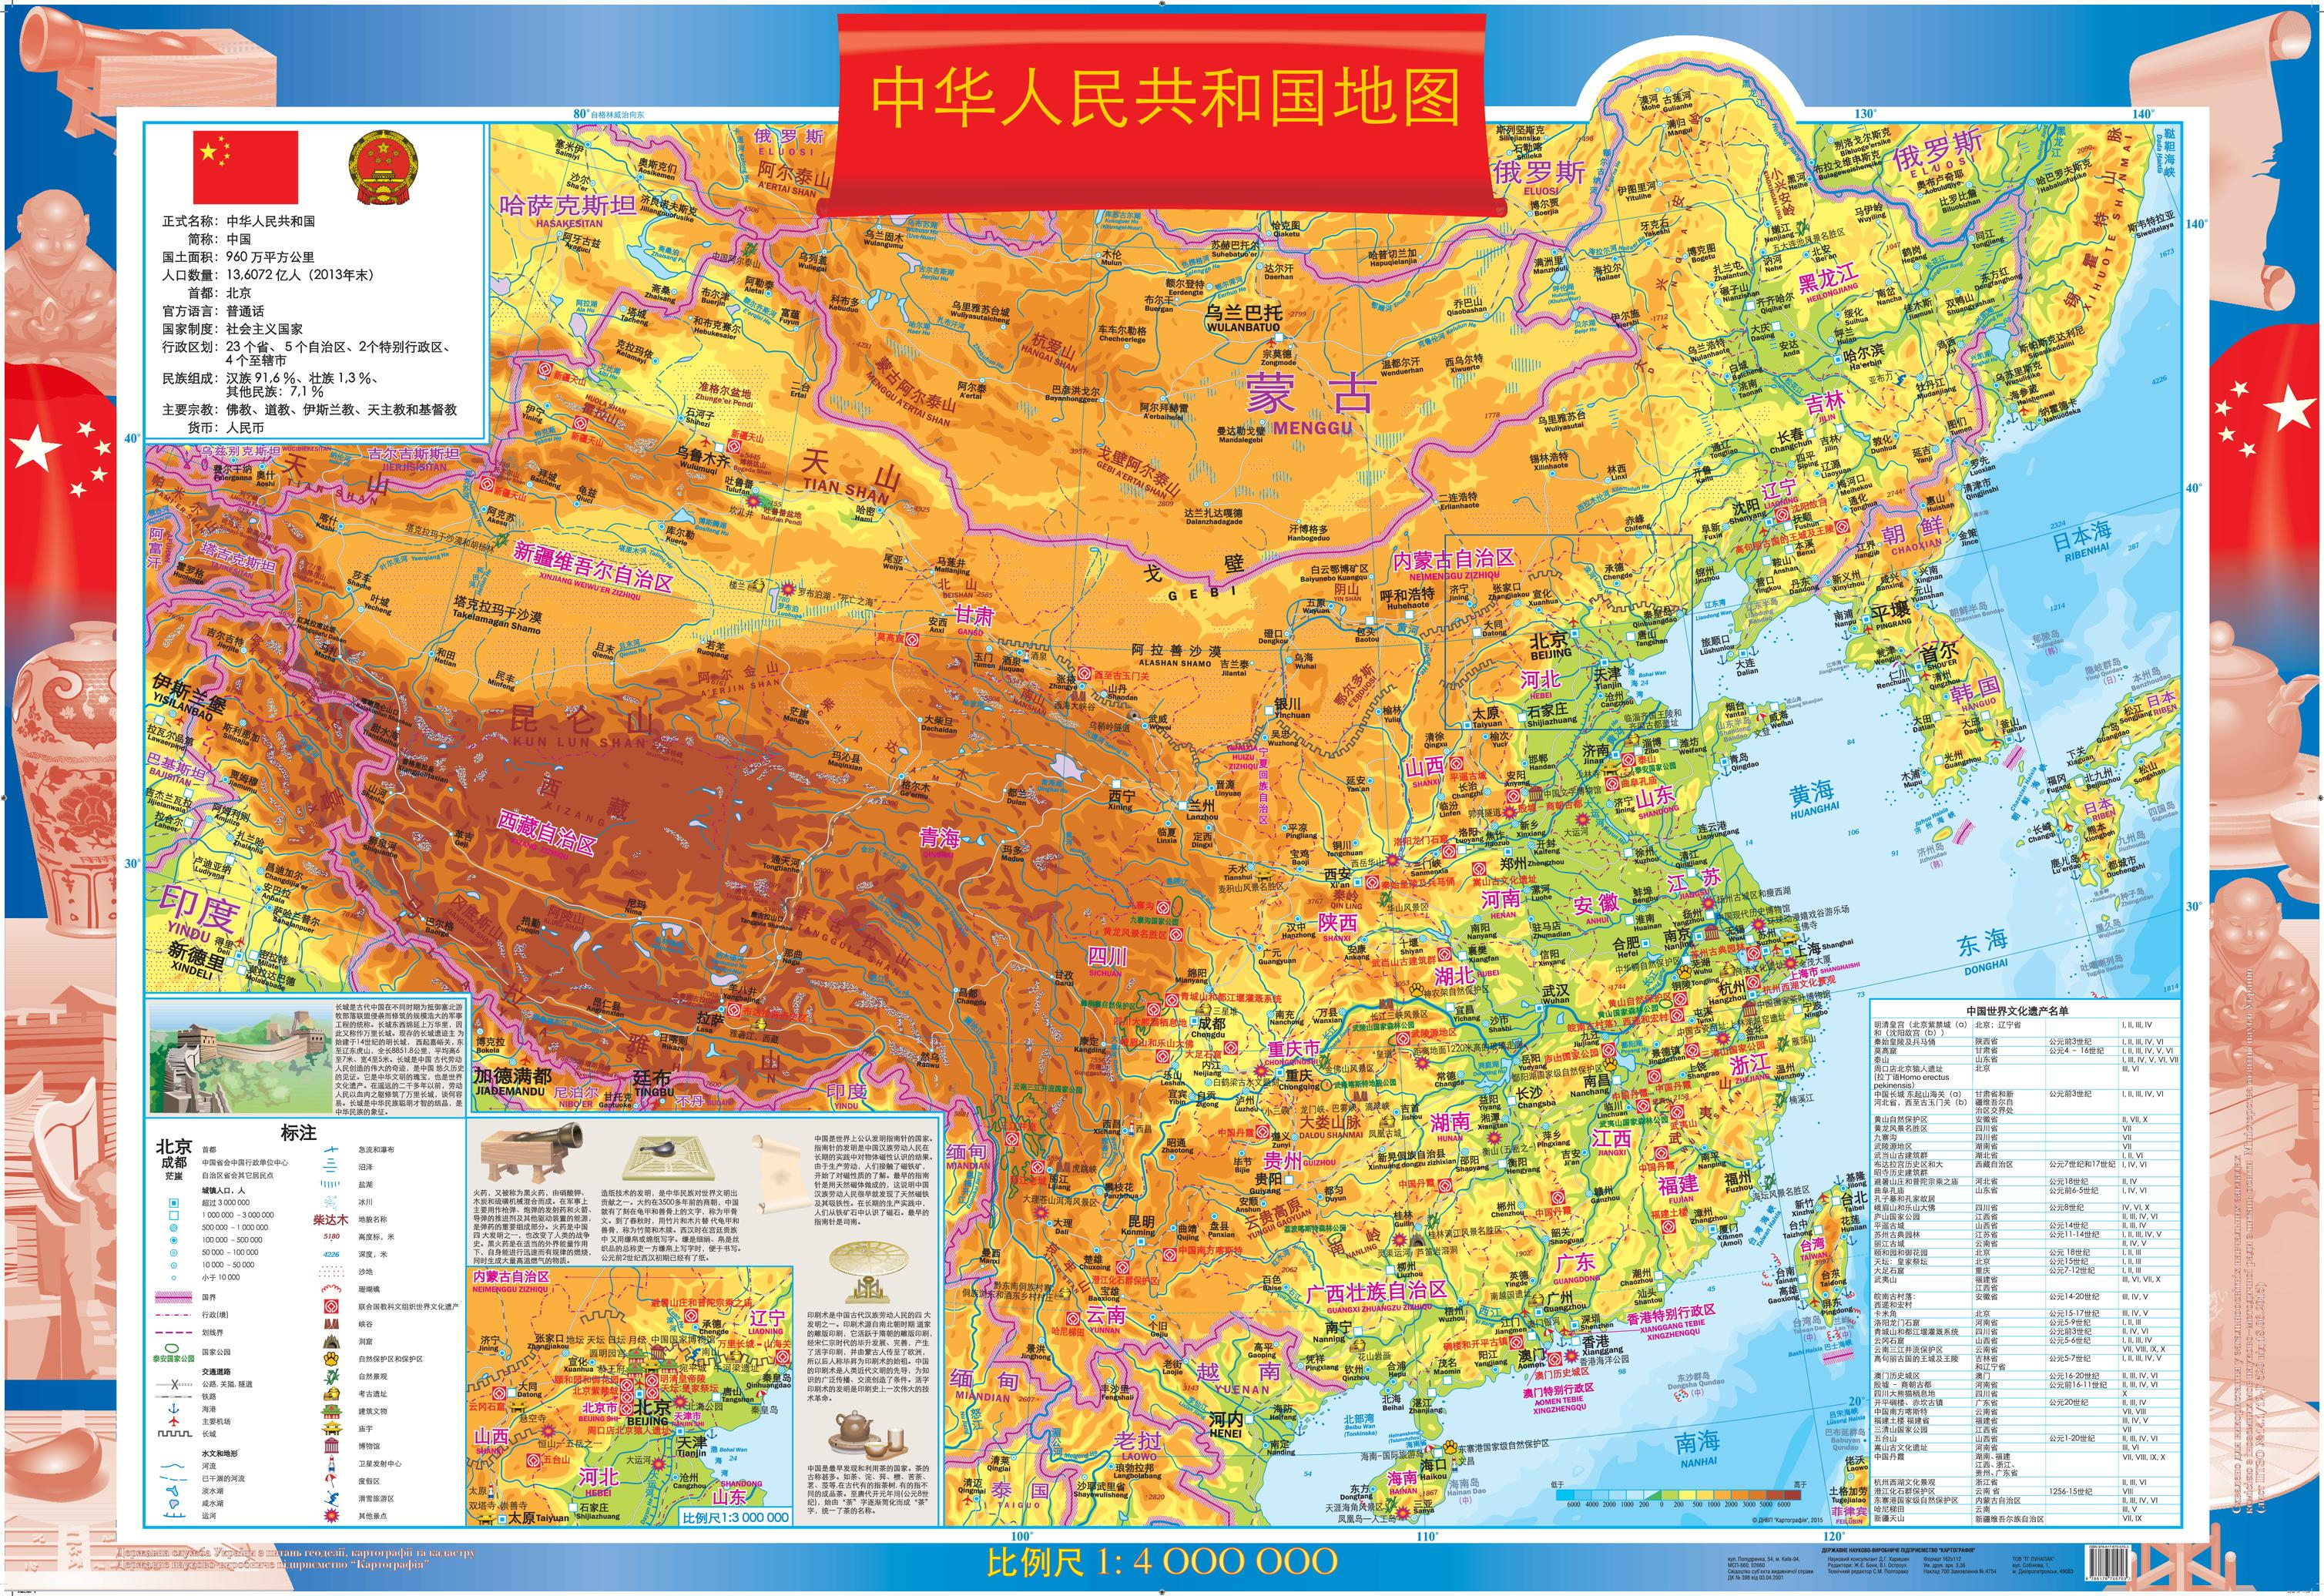 Show Map Of China.China Wall Map Chinese Extra Large